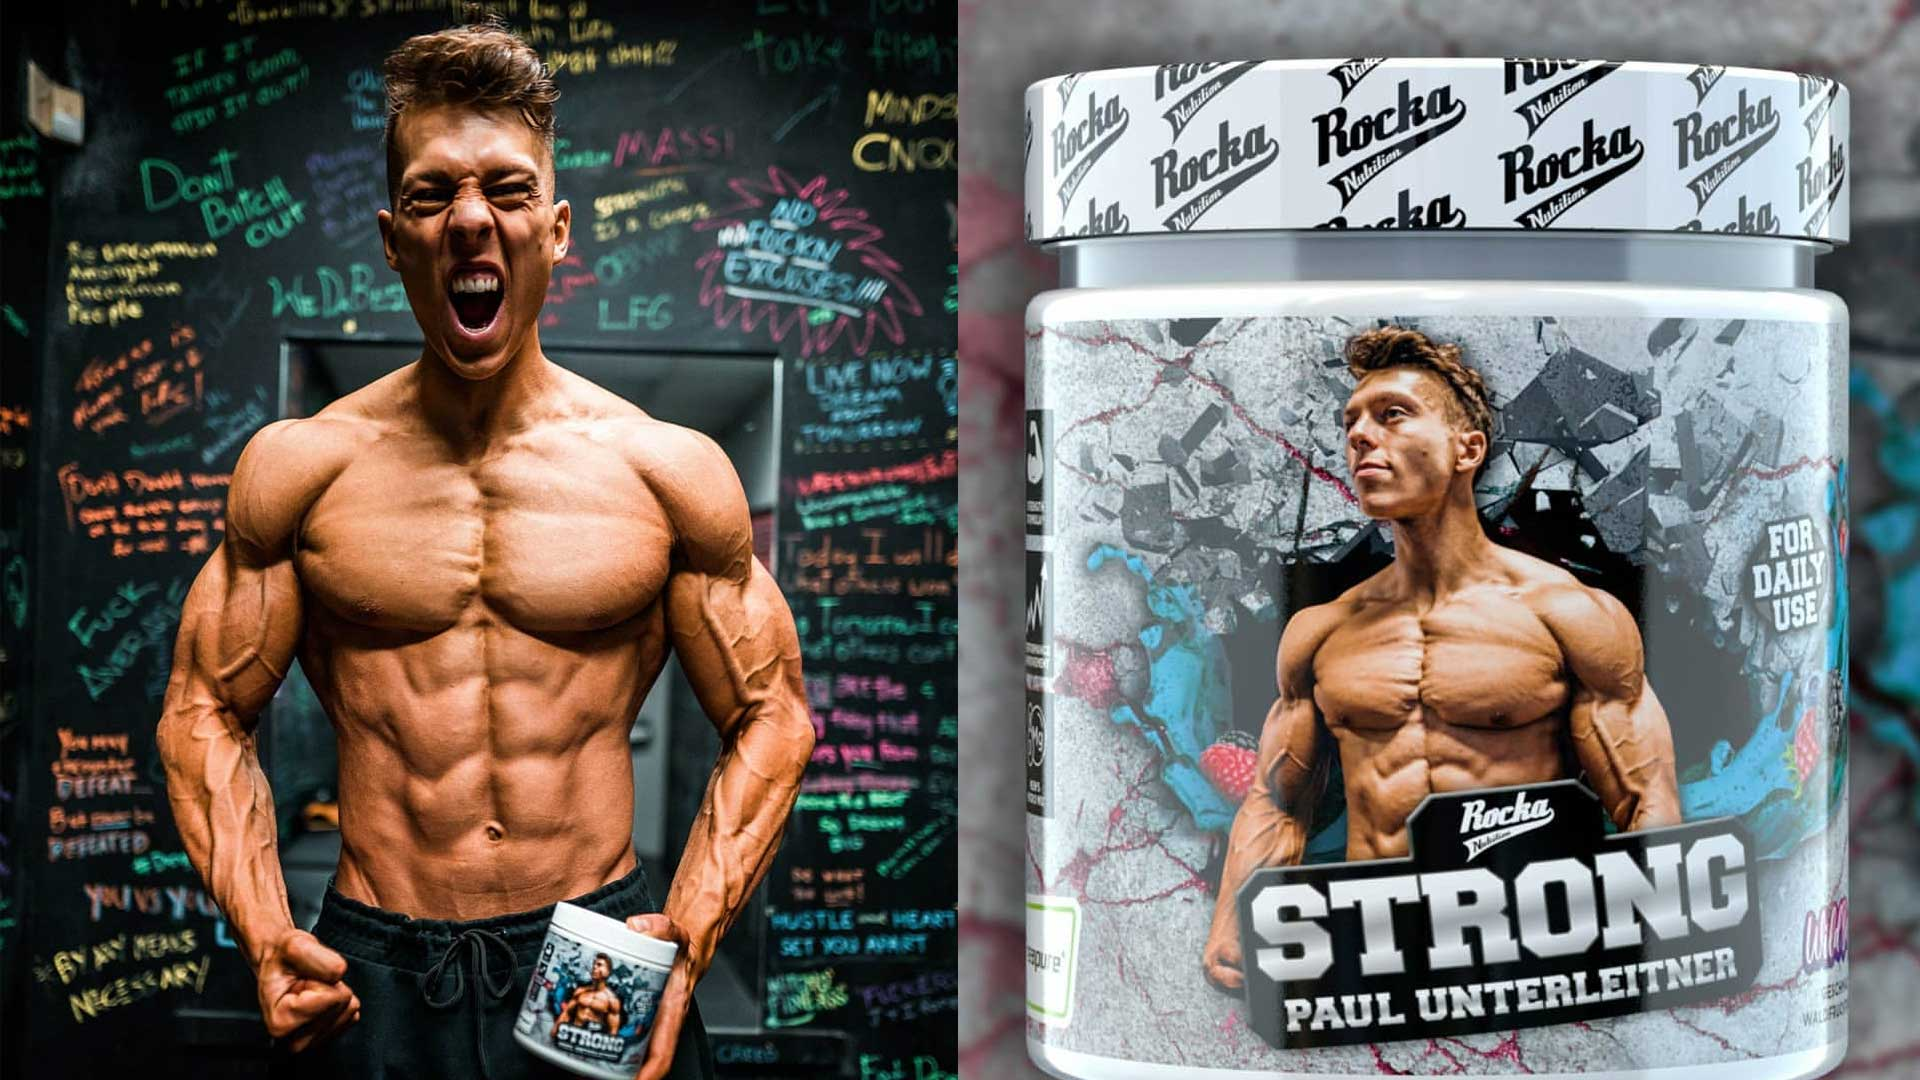 STRONG Rocka Nutrition Paul Unterleitner